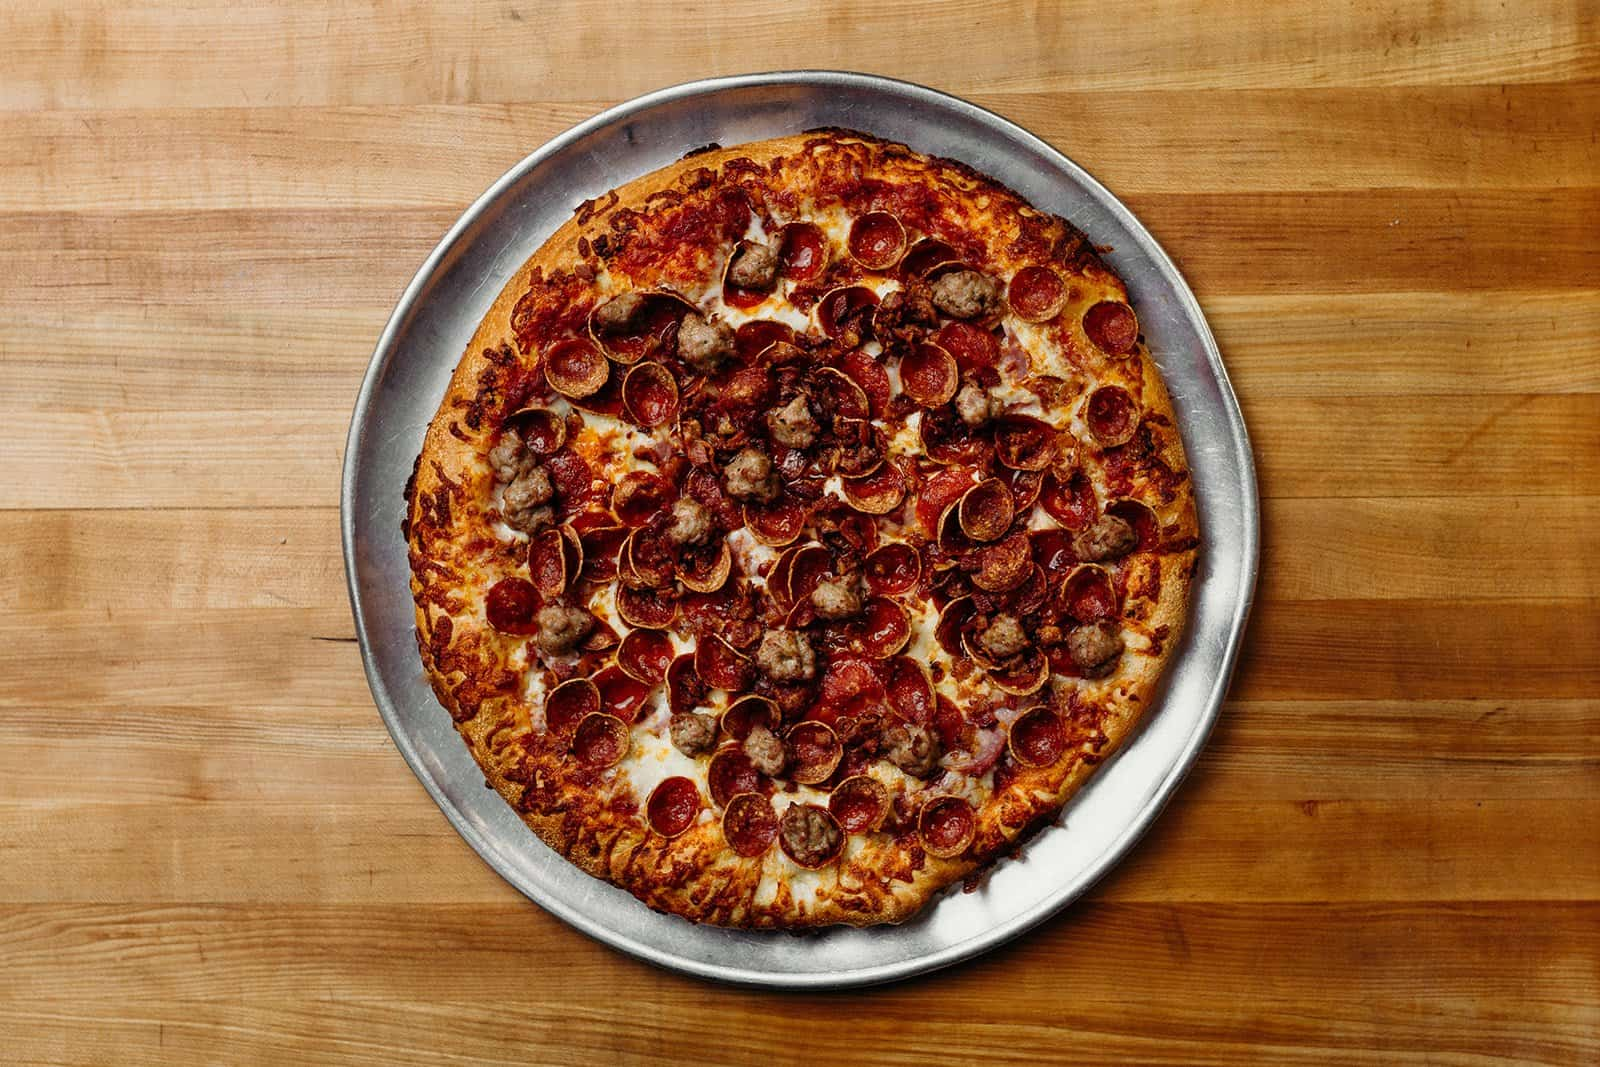 Park Street Pizza / Commercial Shoot 411